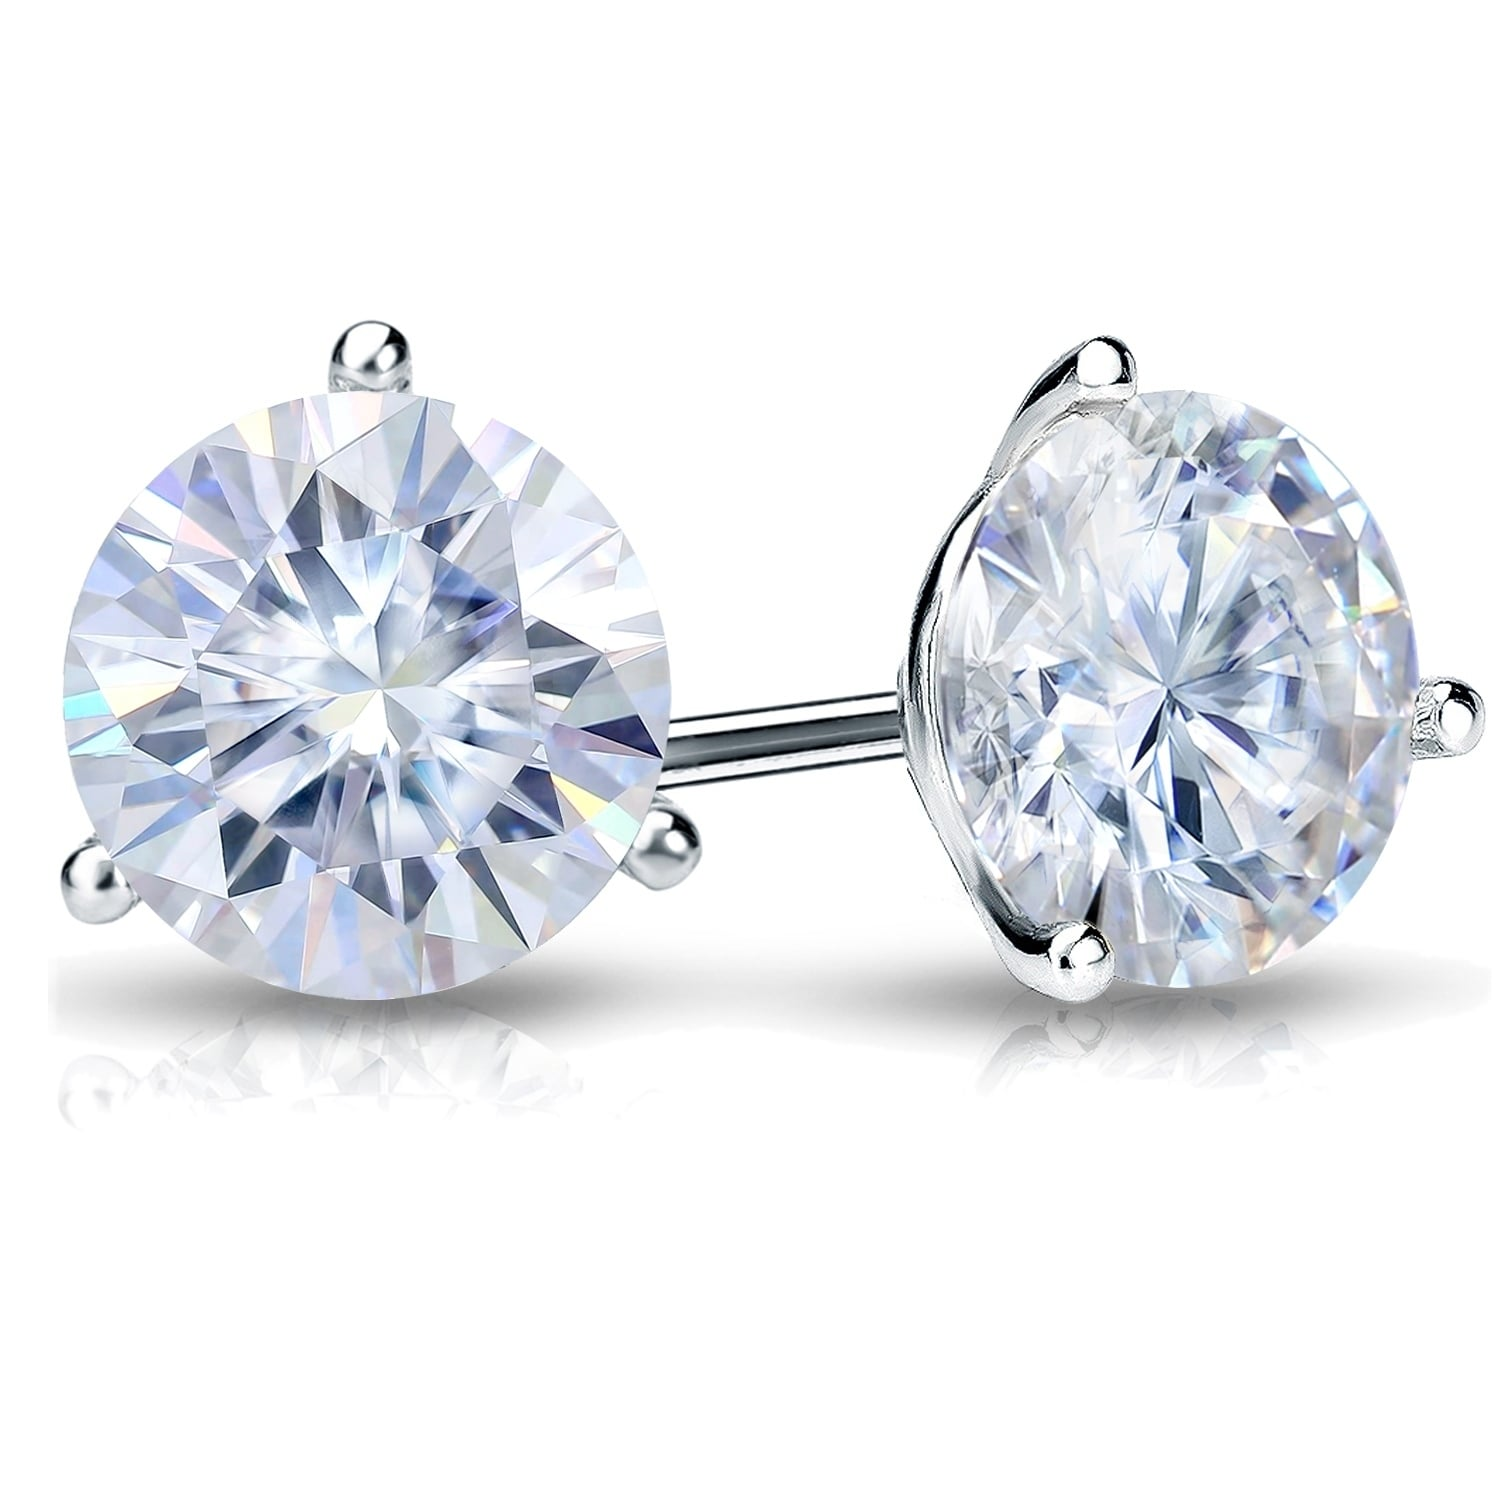 e1c166bc1 Shop Platinum 3 1/2ct TGW Round 3 Prong Martini Moissanite Stud Earrings by  Auriya - 3.50ct - On Sale - Free Shipping Today - Overstock - 23535068